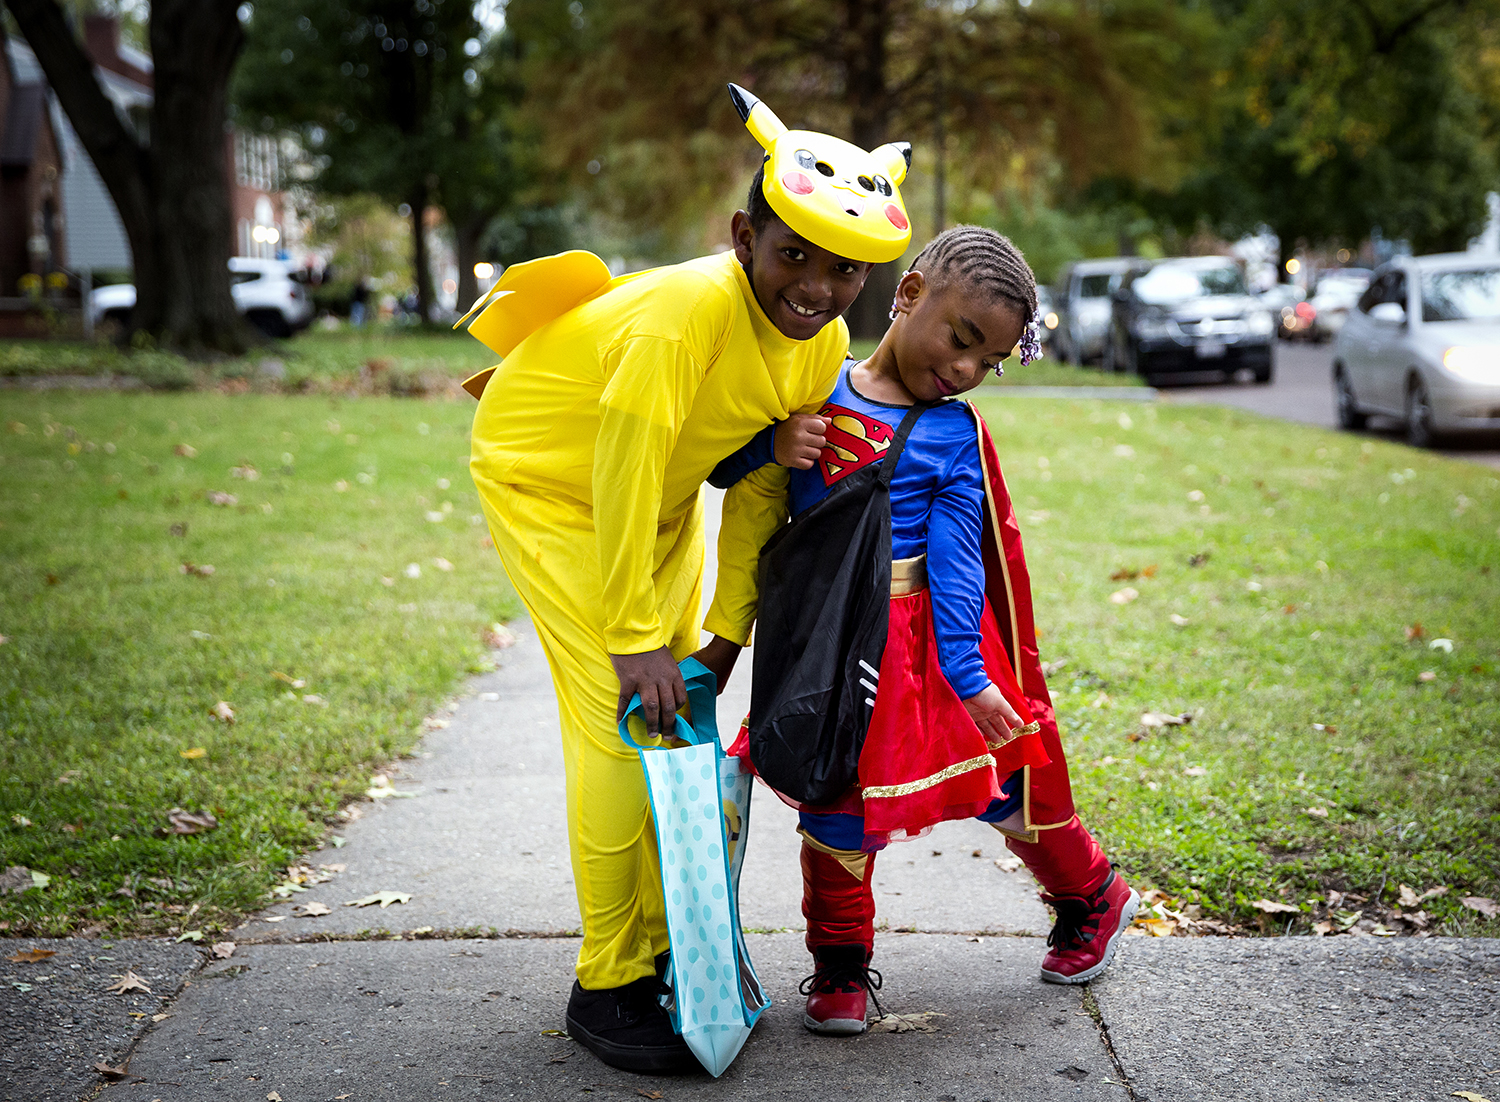 Eason Ross, Pokemon, and his cousin, Anyla Nathan, Super Woman, pose for a photo while trick or treating on South Glenwood Avenue Oct. 31. Rich Saal/The State Journal-Register